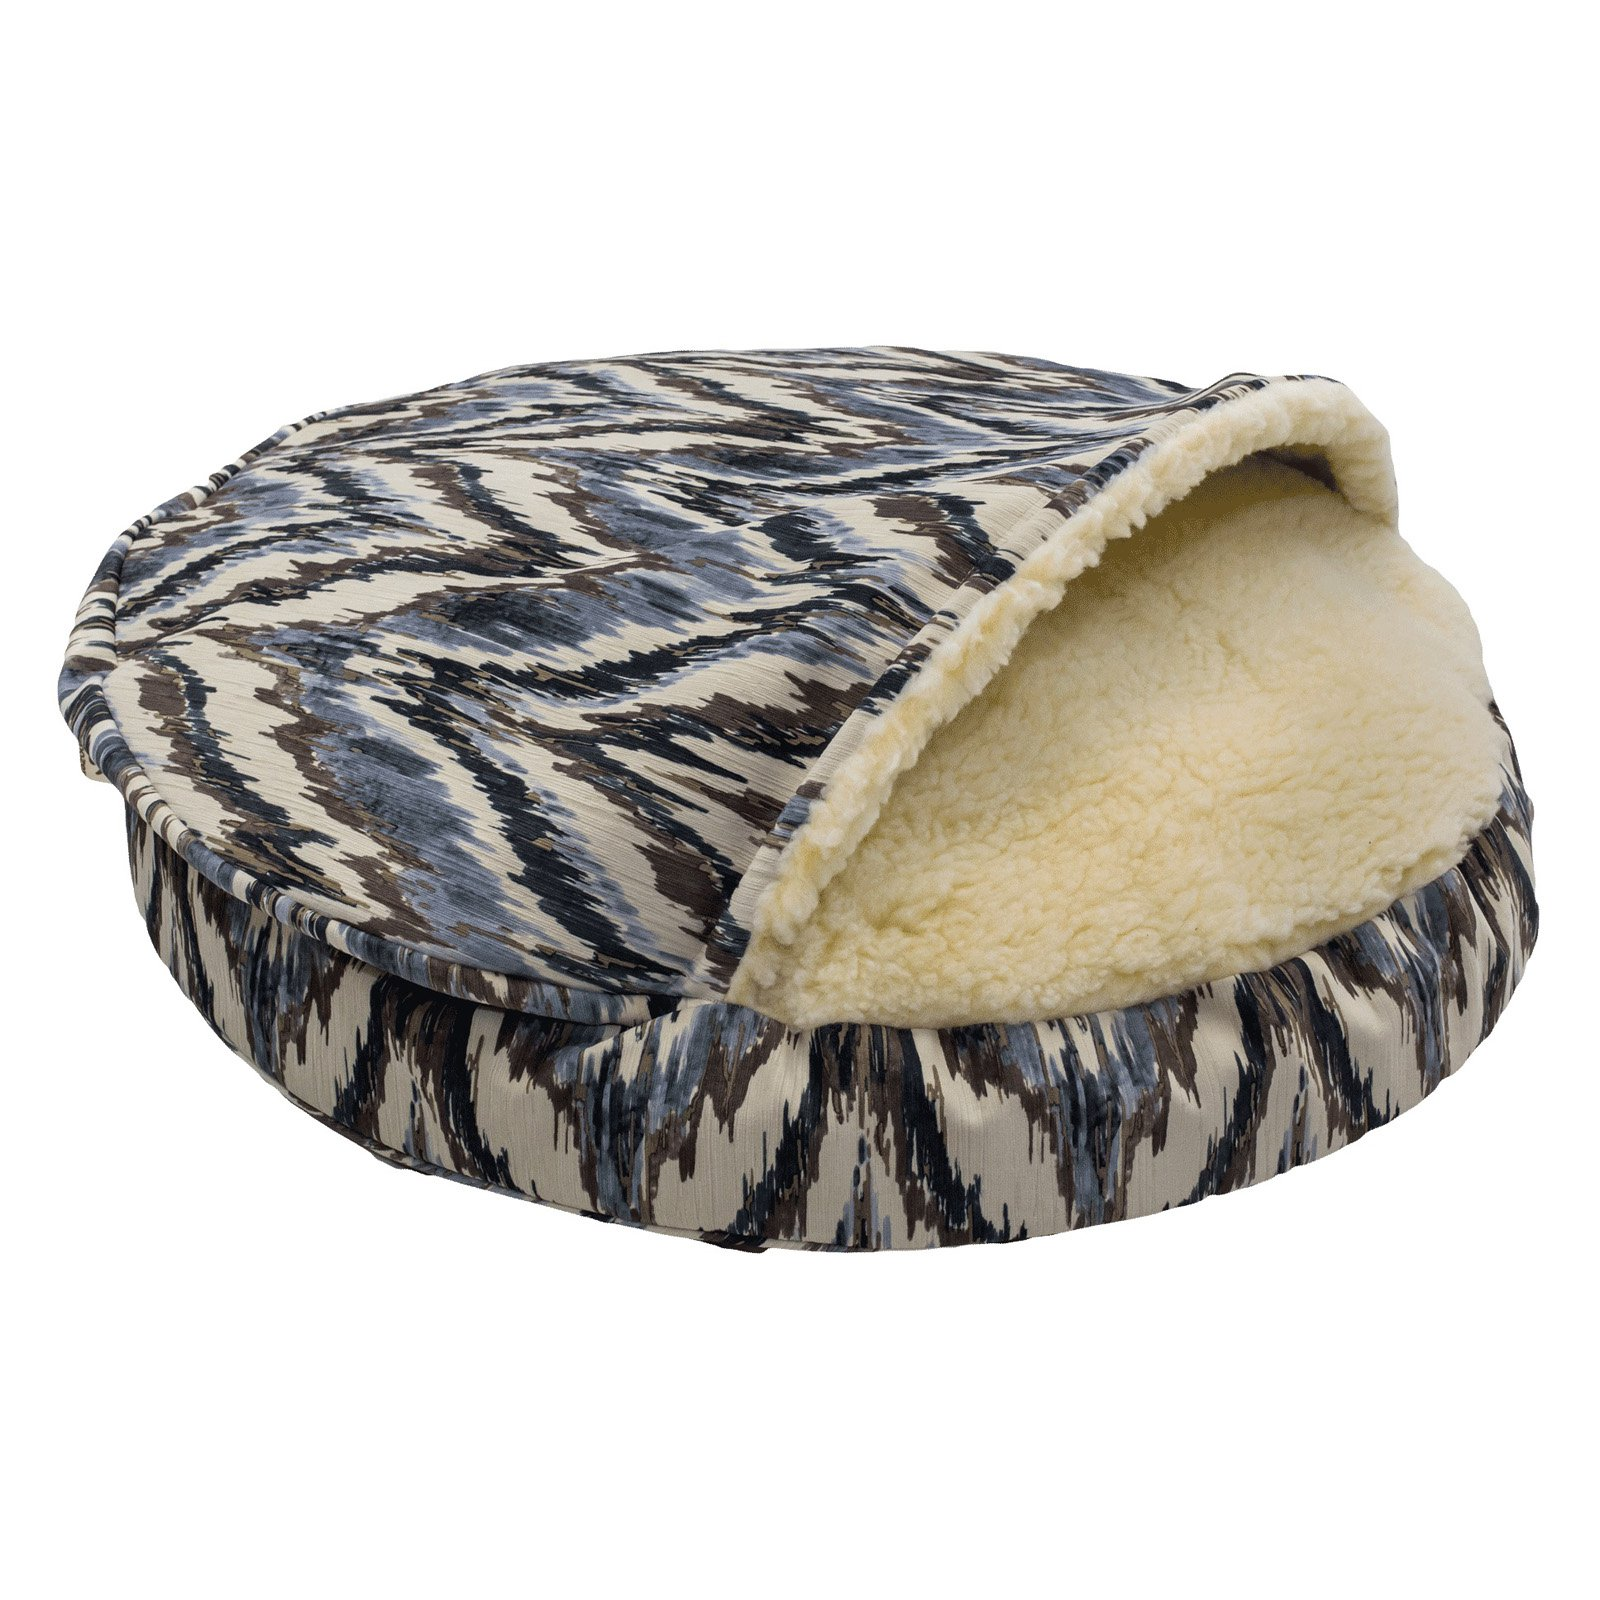 Snoozer Show Dog Microsuede Cozy Cave Pet Bed